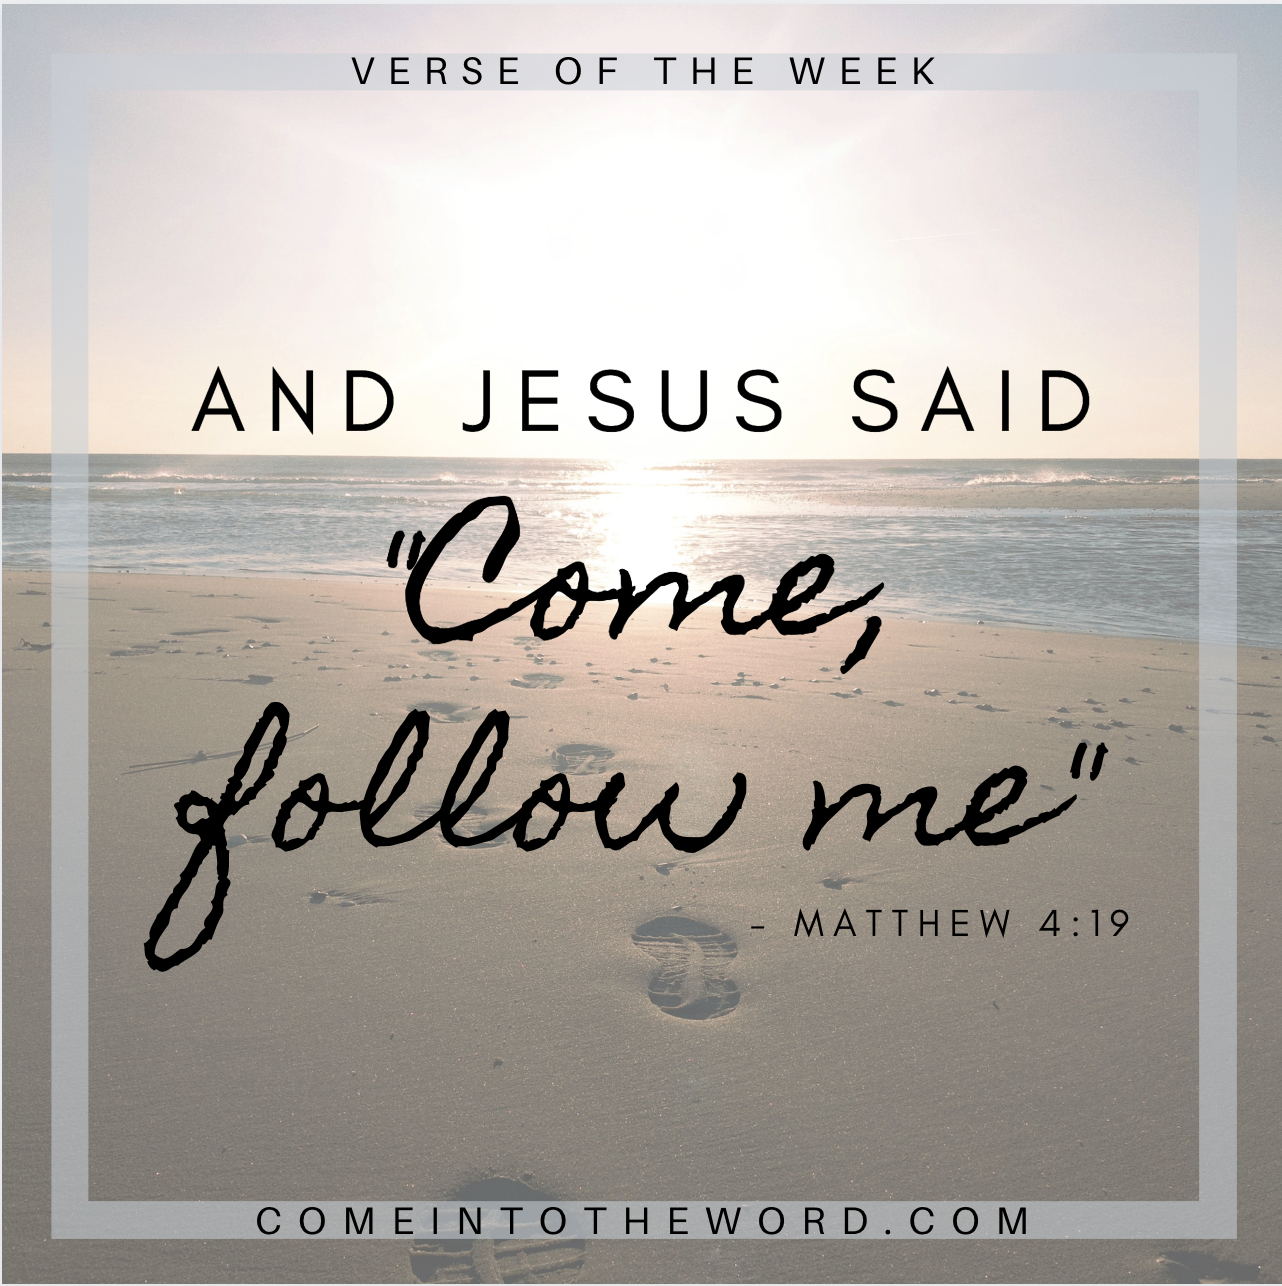 "And Jesus said ""Come, follow me"" - Matthew 4:19"